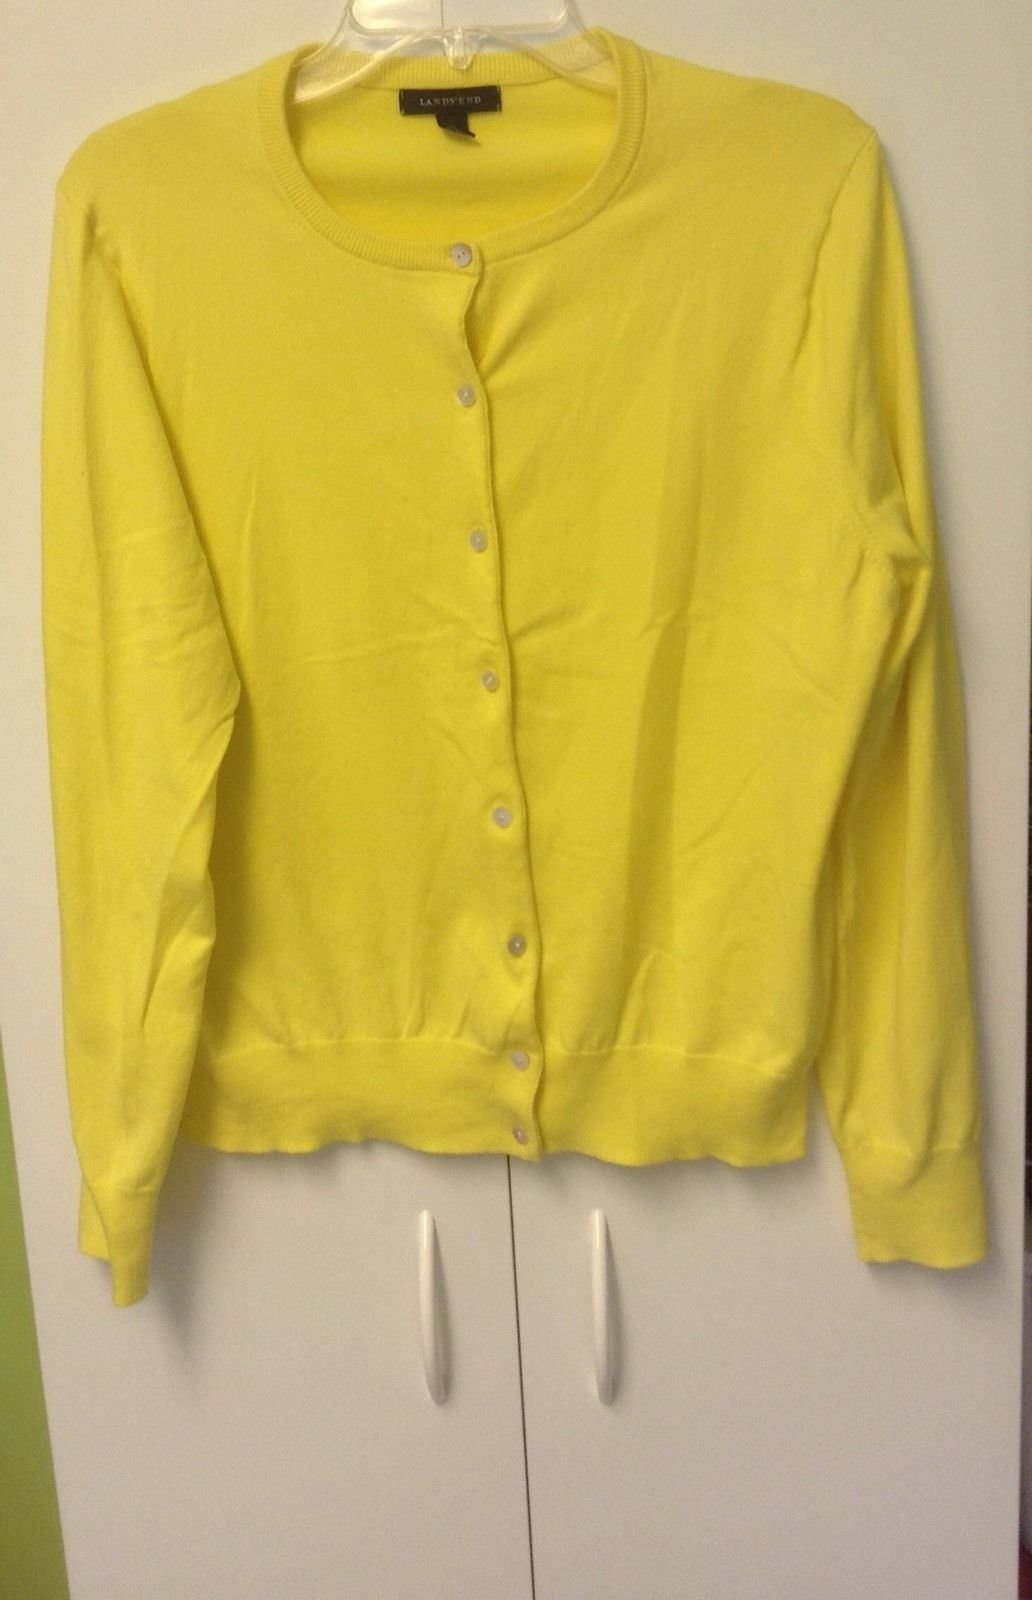 Lands End Womens Bright Yellow Cotton Blend Cardigan Sweater Large ...